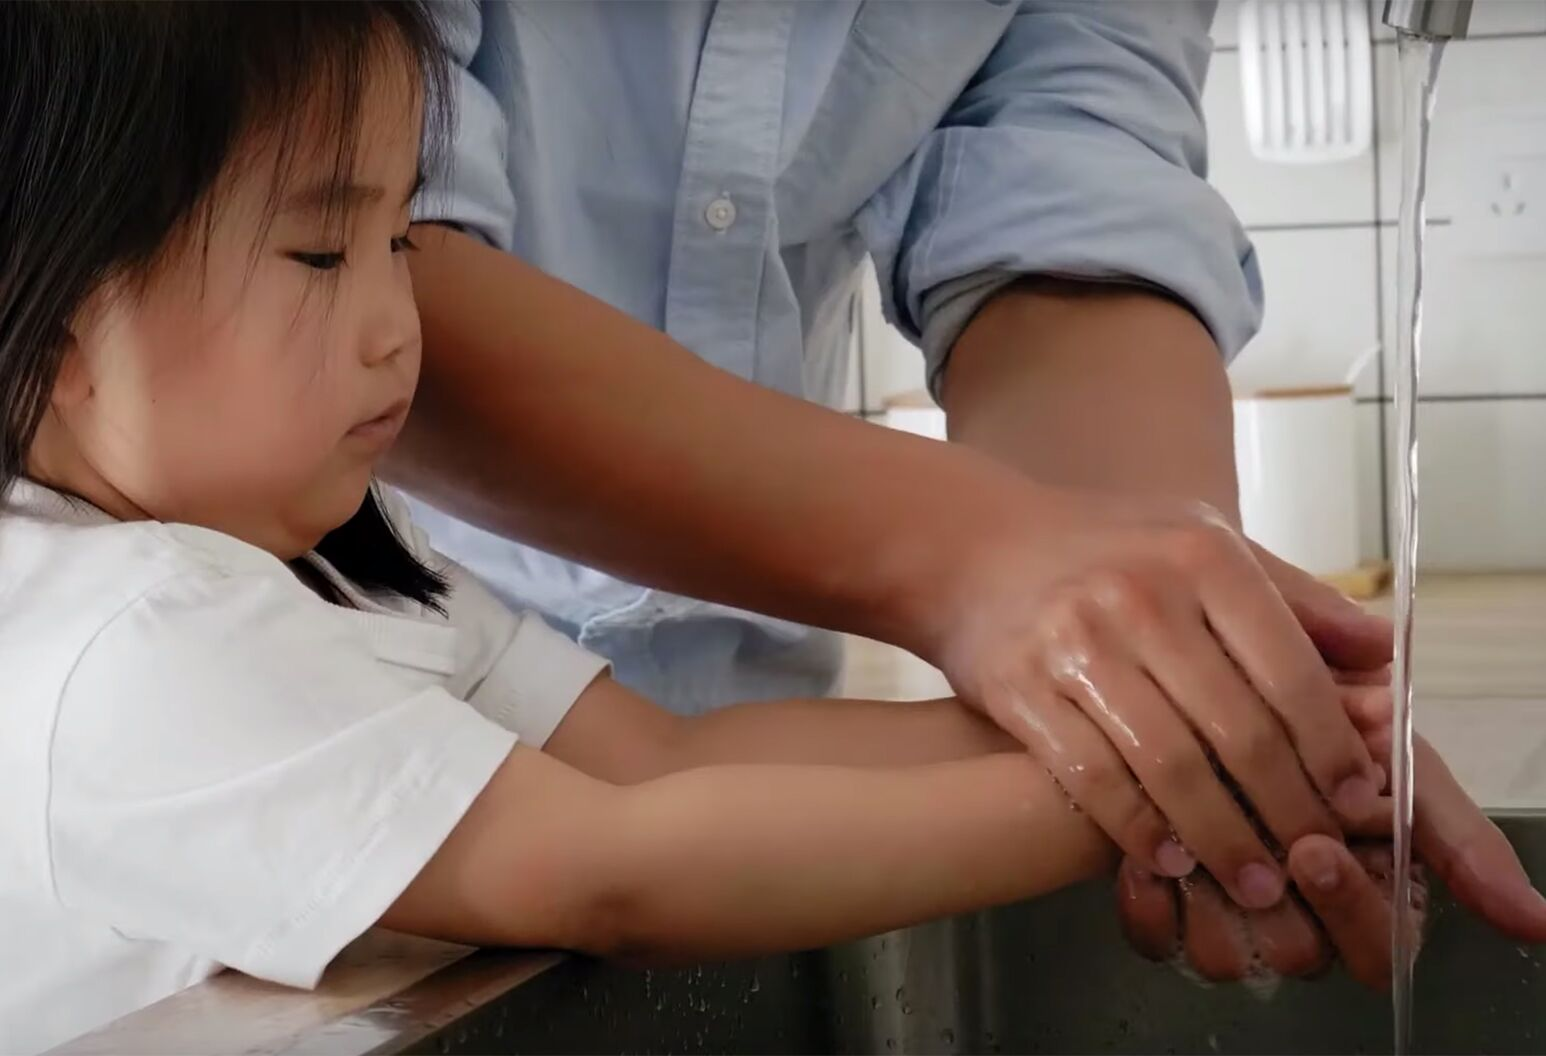 A little girl stands at a kitchen sink washing her hands, while a parent holds her hands and helps her.